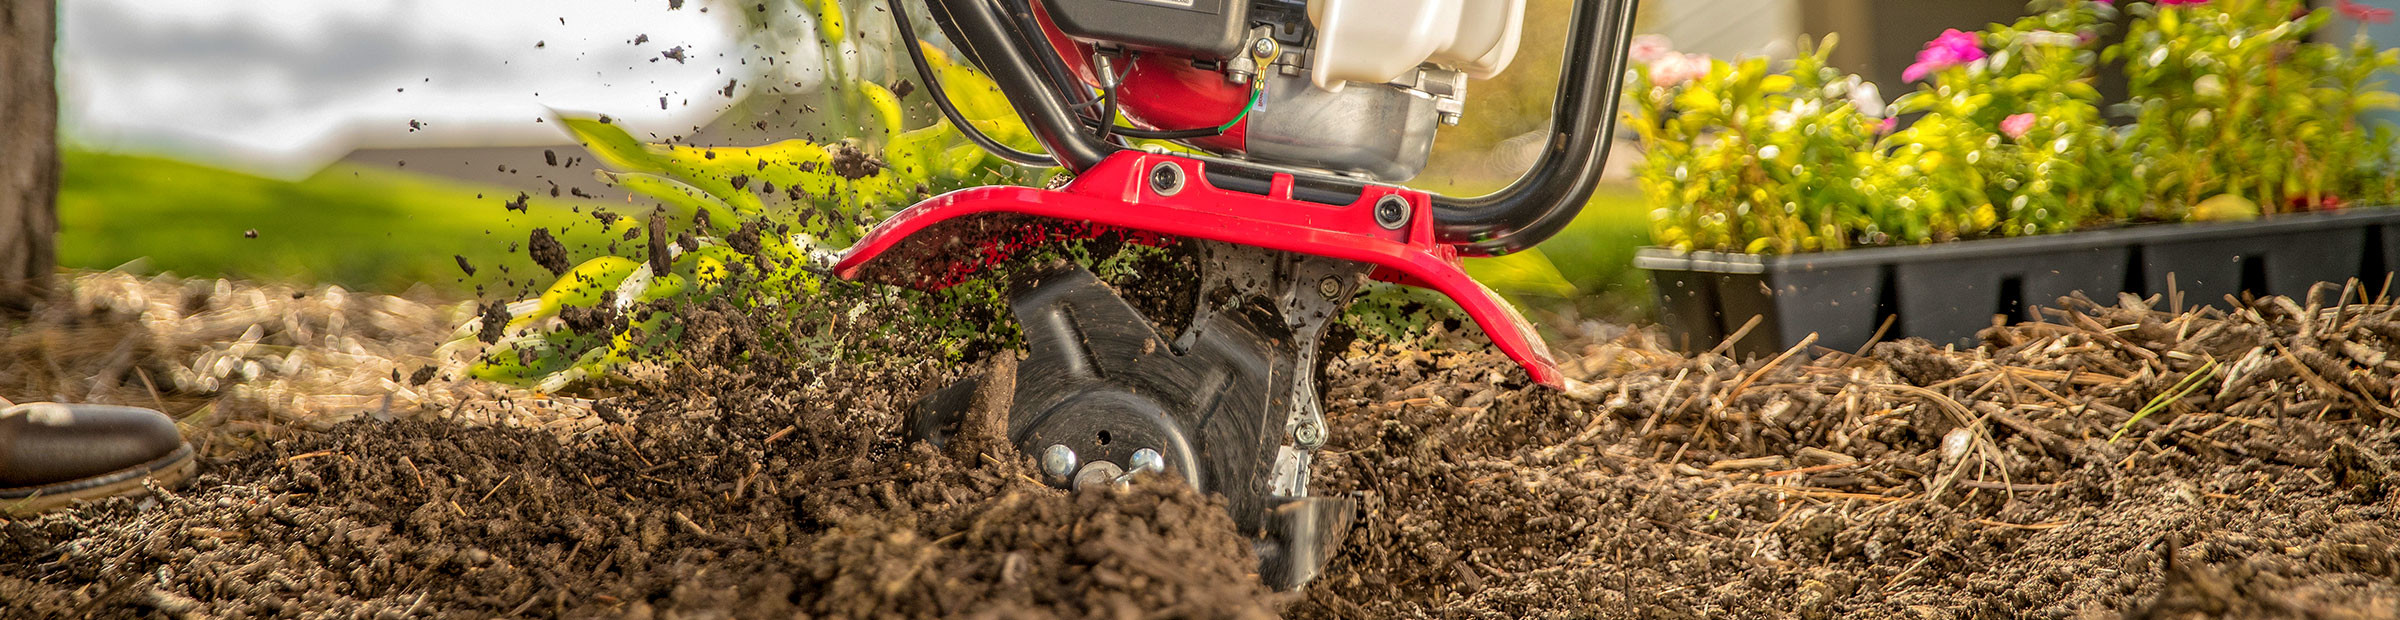 2020 Honda Power Equipment Tillers